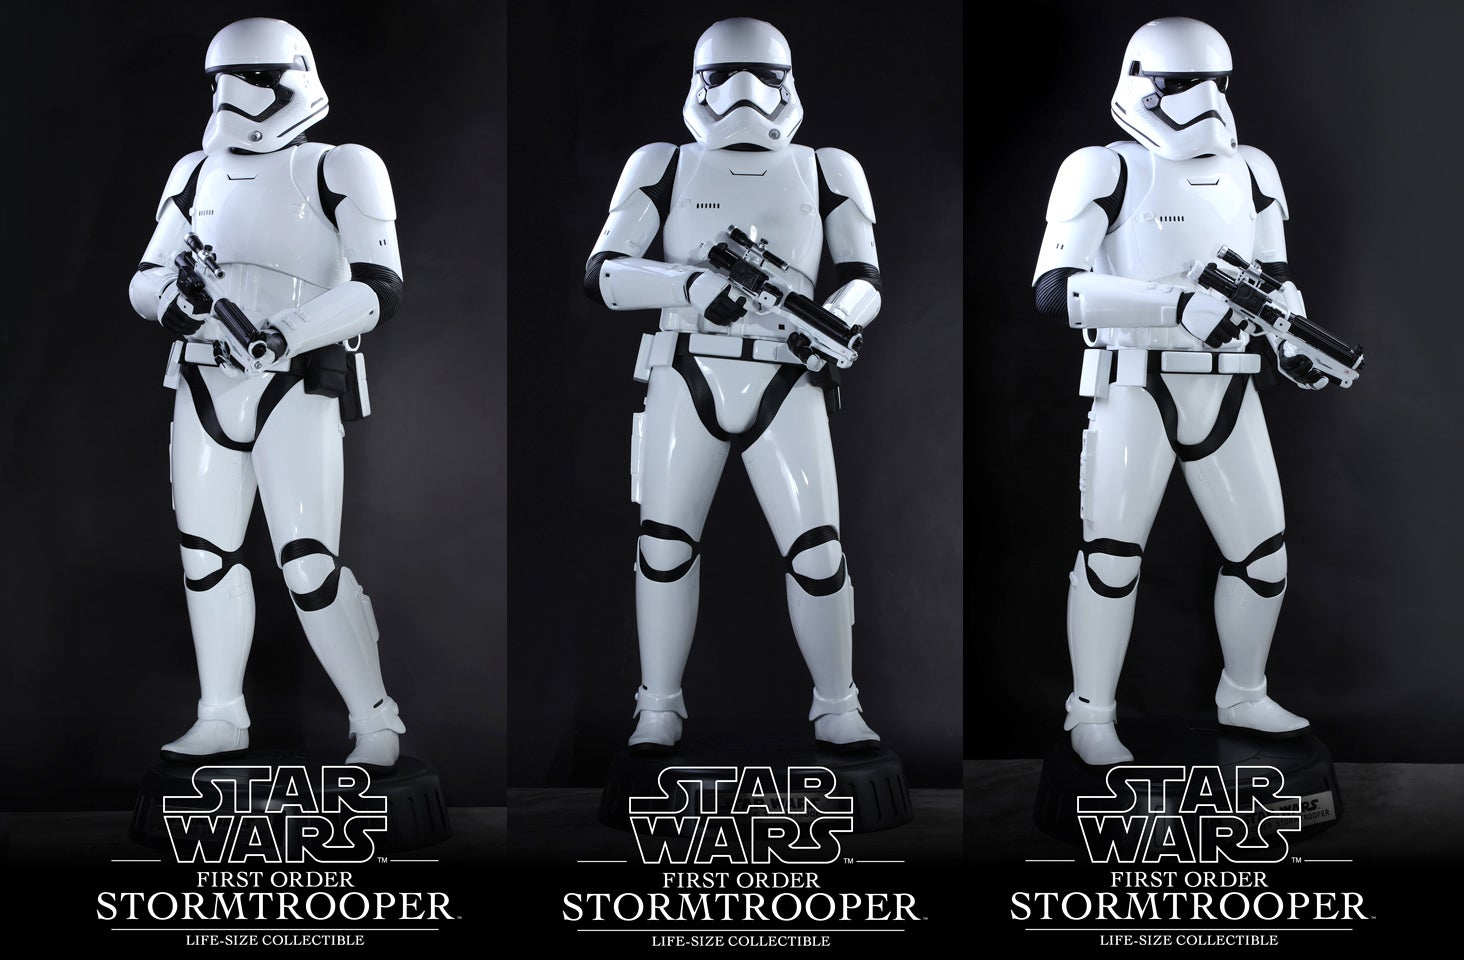 The Ultimate Star Wars Action Figure Is Life-Sized and Costs $US8,000 ($10,497)